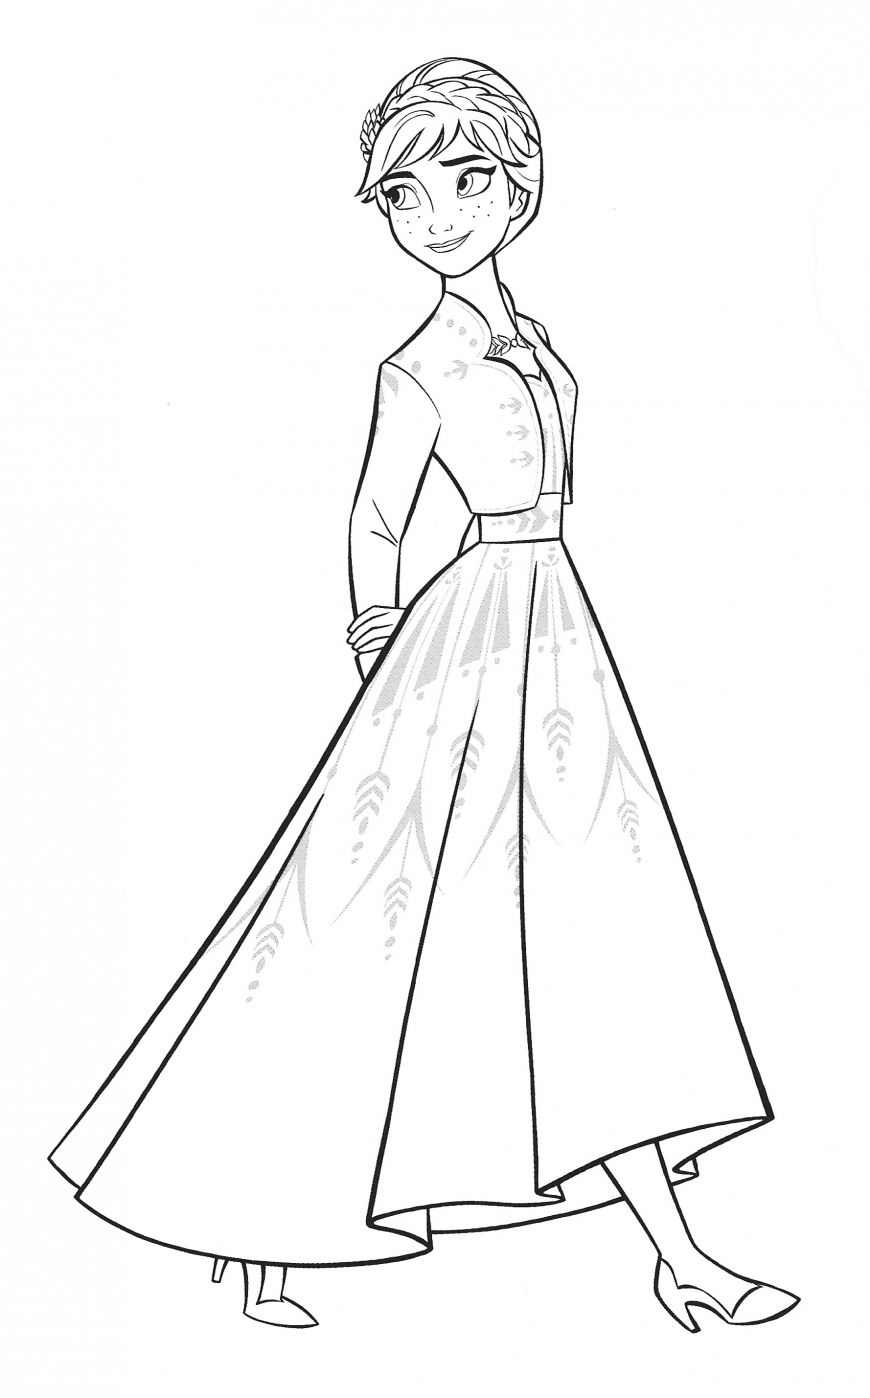 Frozen 2 Free Coloring Pages With Anna Frozen Coloring Pages Frozen Coloring Disney Princess Coloring Pages